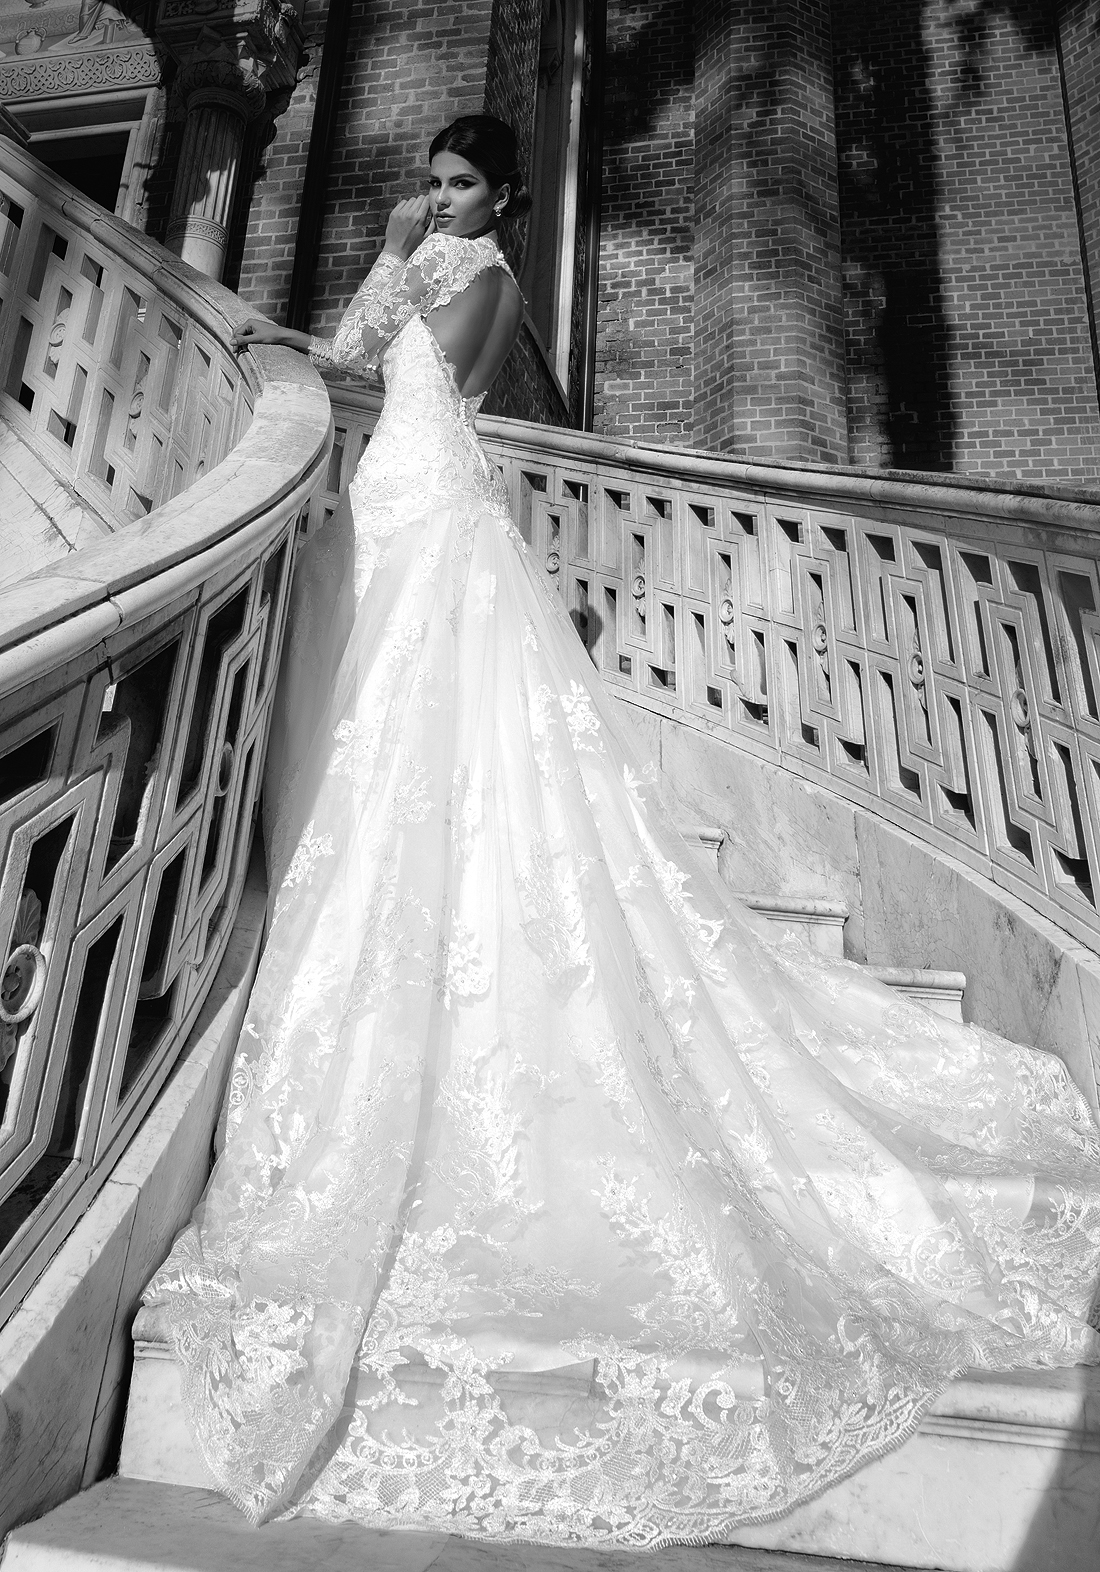 Wedding Gowns with Long Trains, Beaded Long Train Wedding Gown, Wedding Gowns with Trains, Ball Gowns with Long Trains, Extra Long Train Wedding Gowns, Long Sleeve Bridal Dress, Long Train Wedding Dresses Design